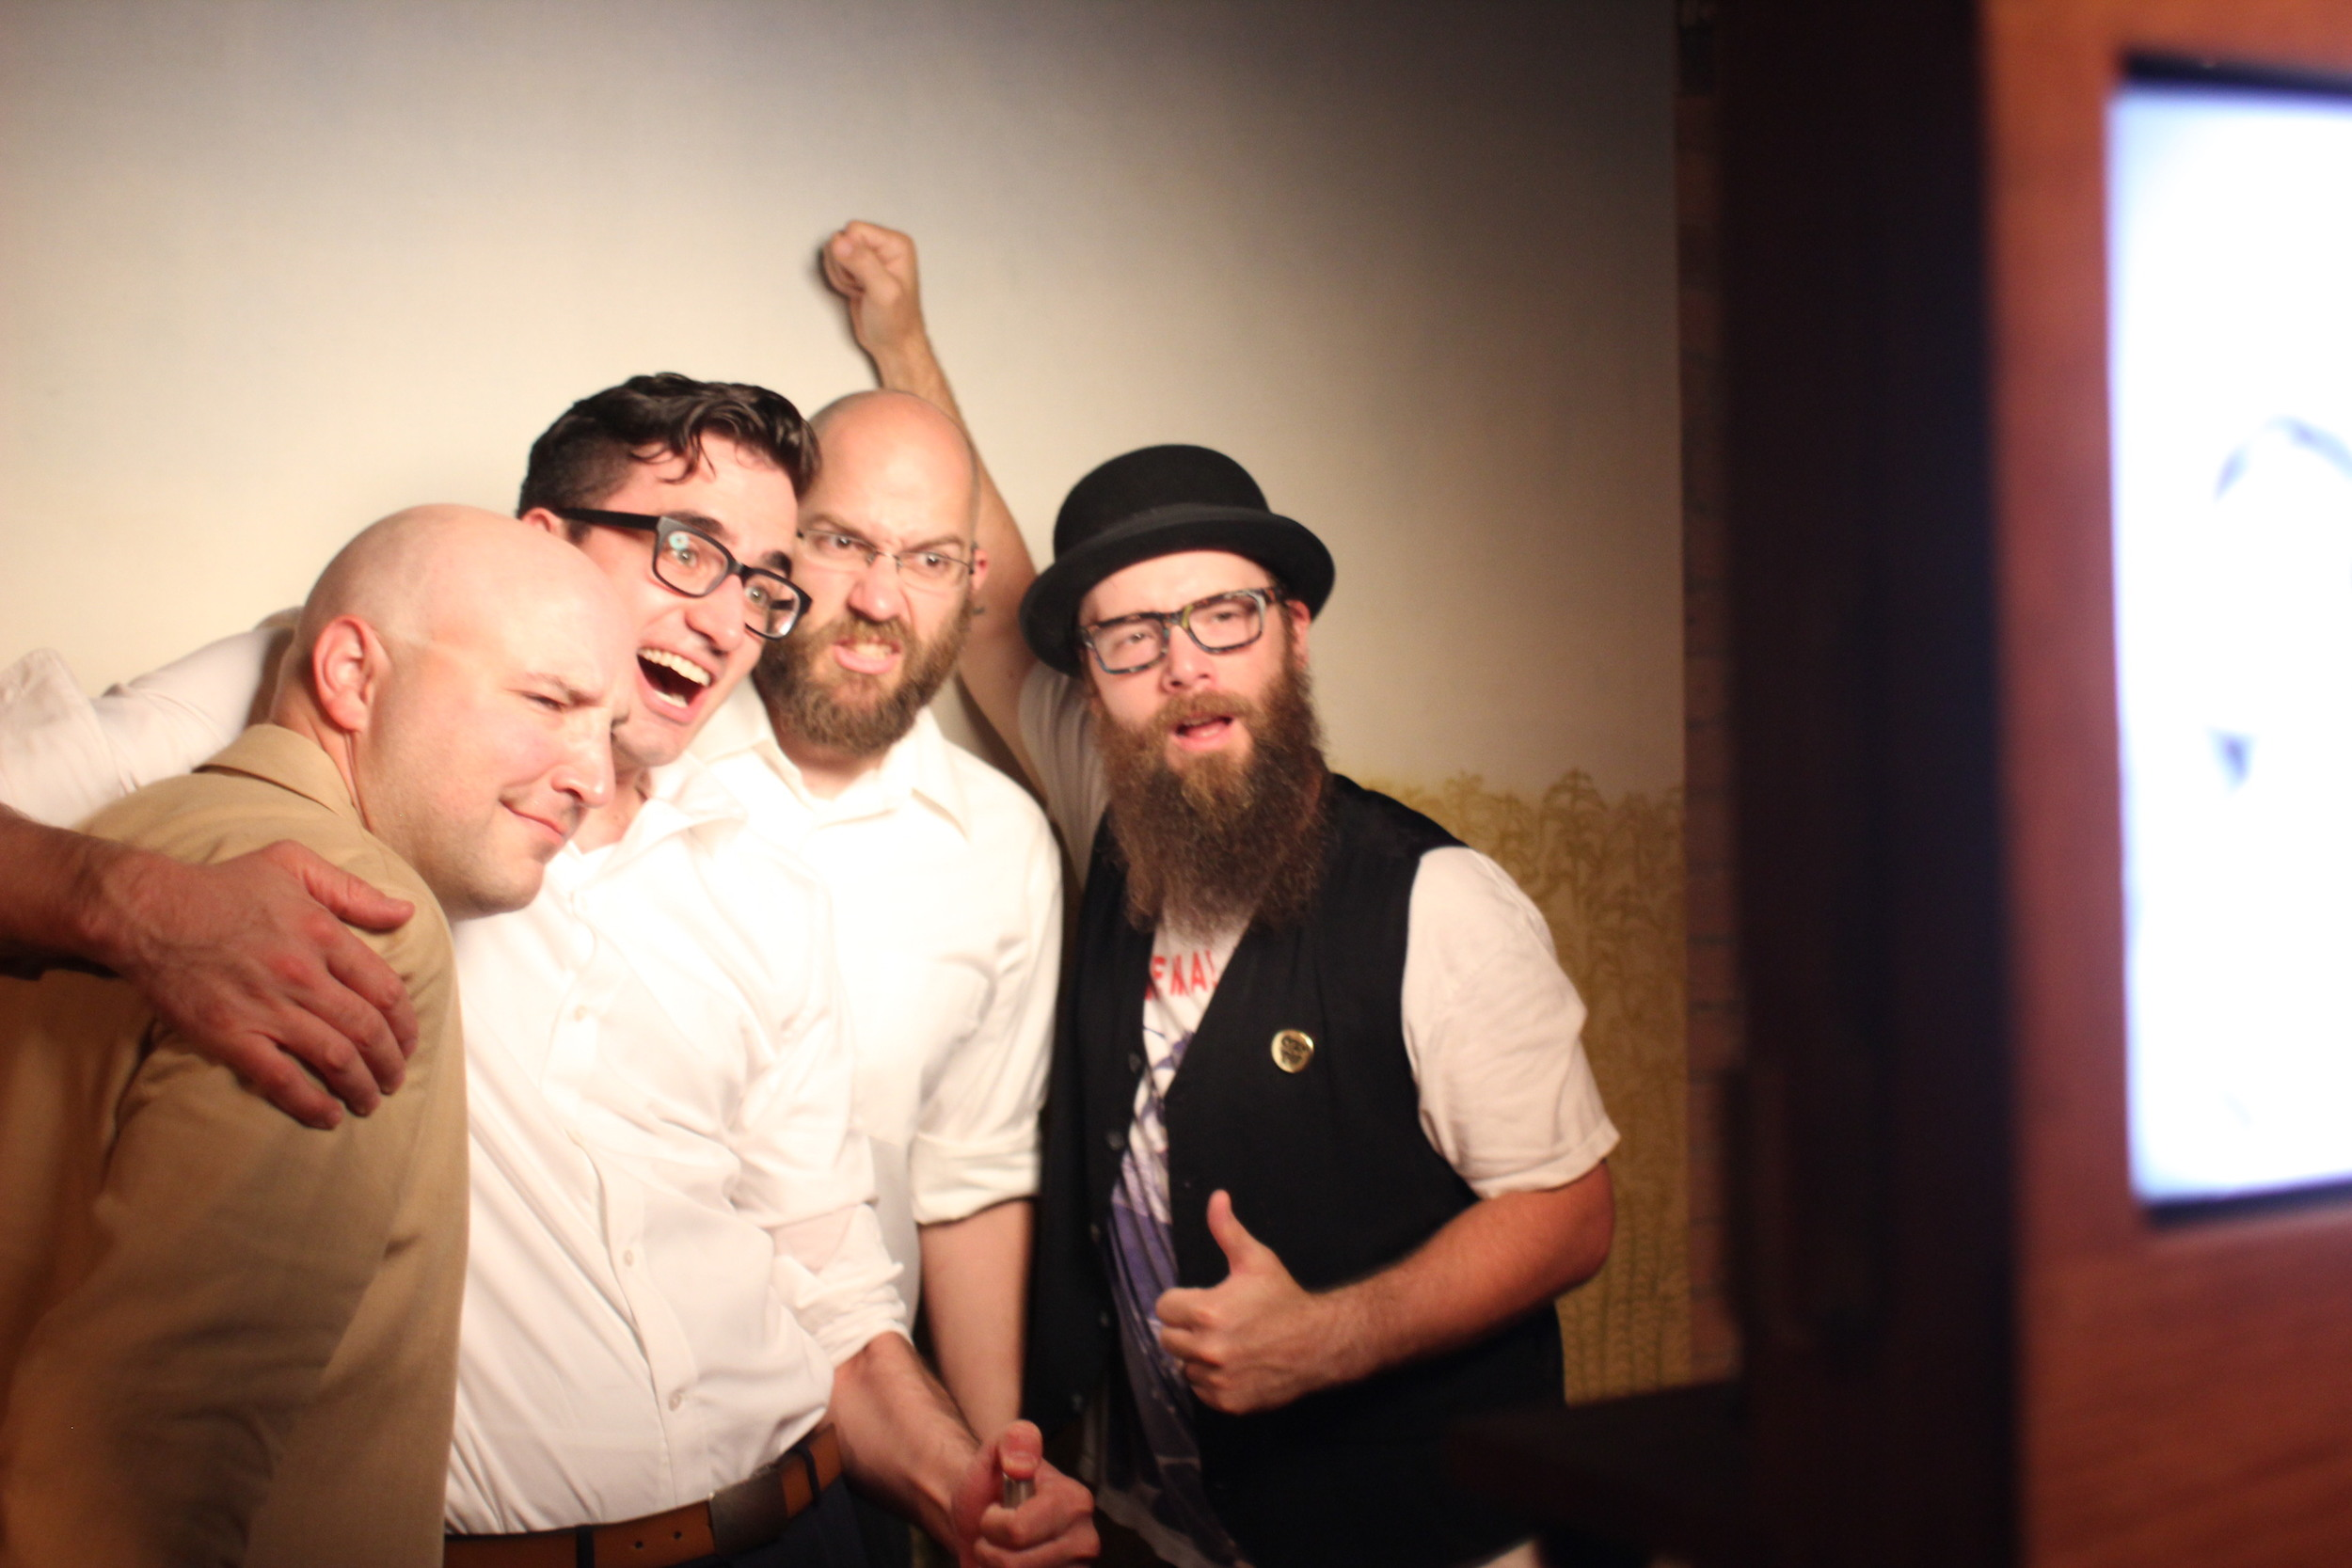 PJ McNulty, Chris Tourre, Jay Eychaner, and Lance Curran from Arcade Brewery pose for a photo booth picture at Lilltstreet Loft!